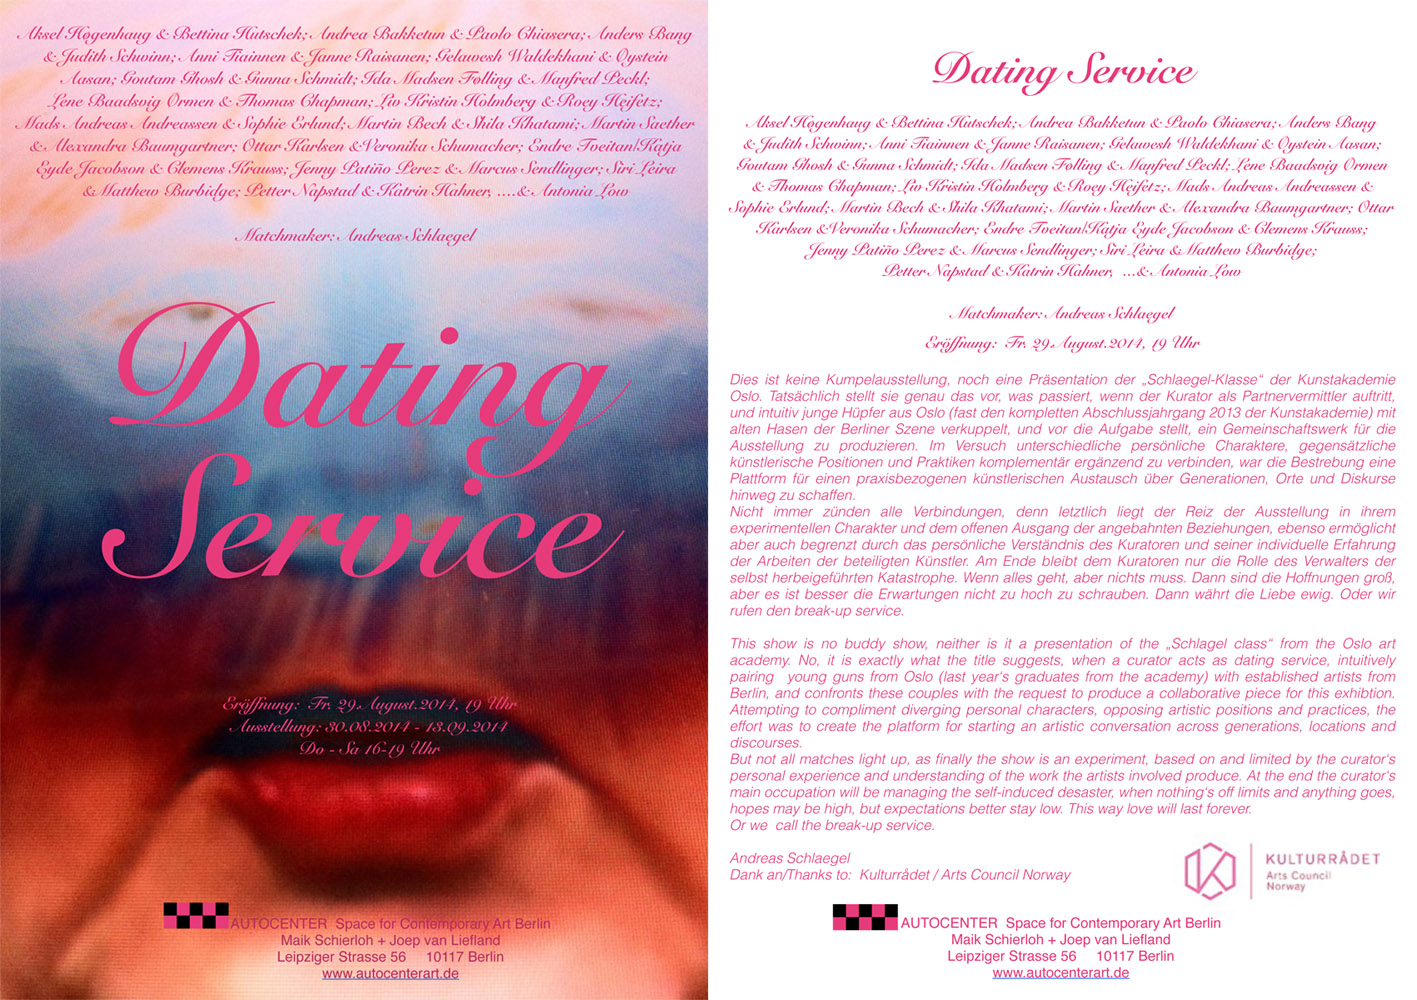 DatingServices